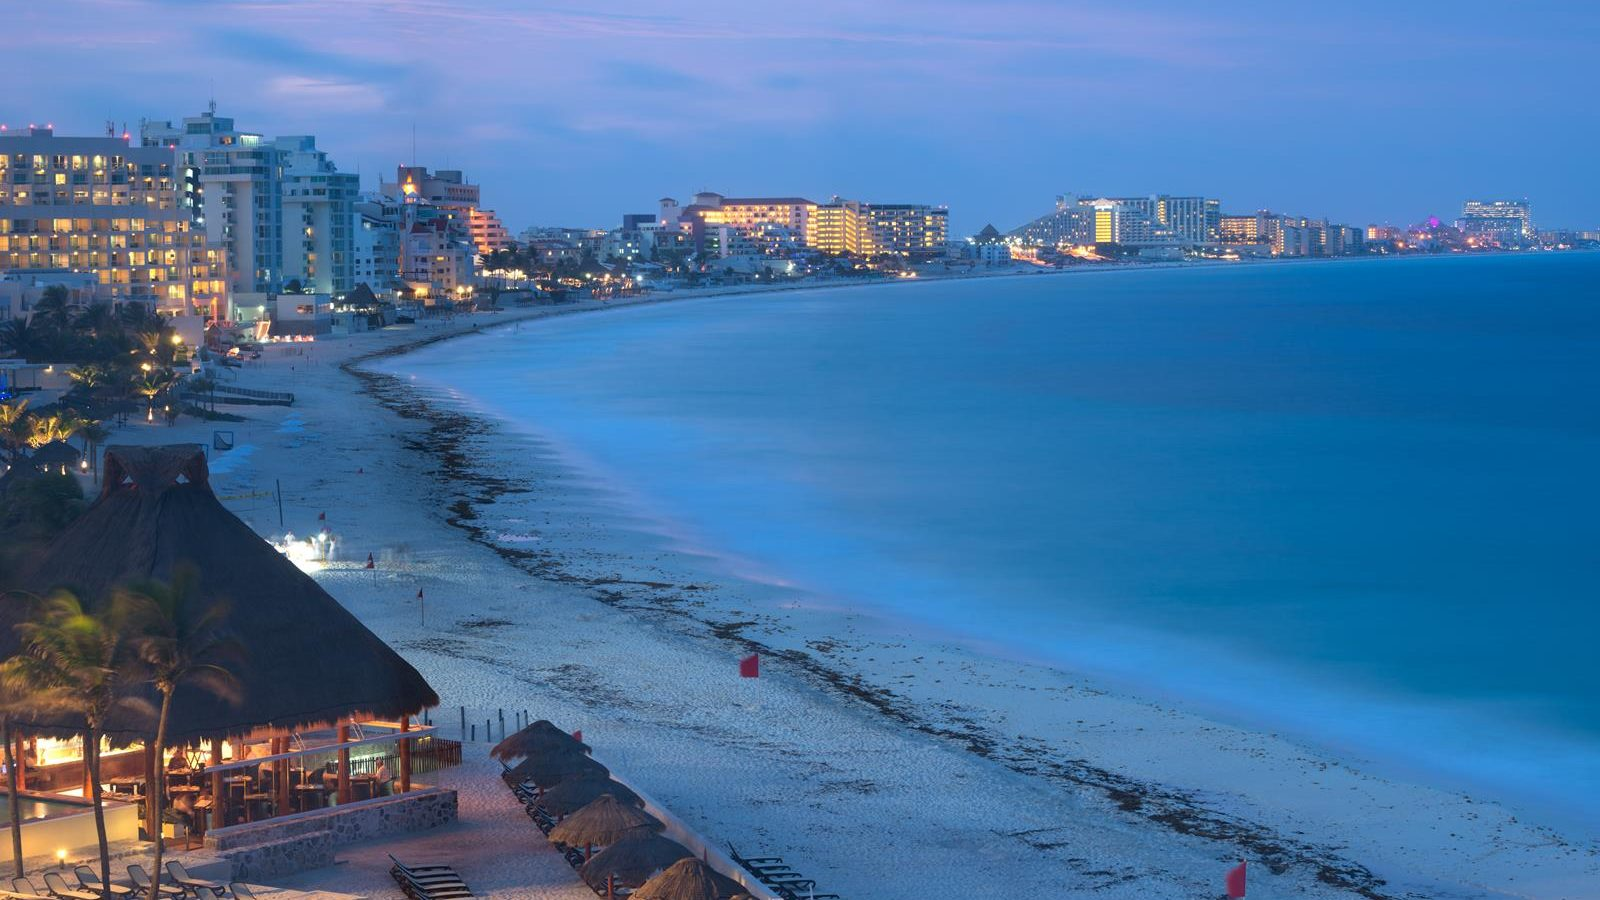 This image shows the scenery of Cancun at night, Mexico